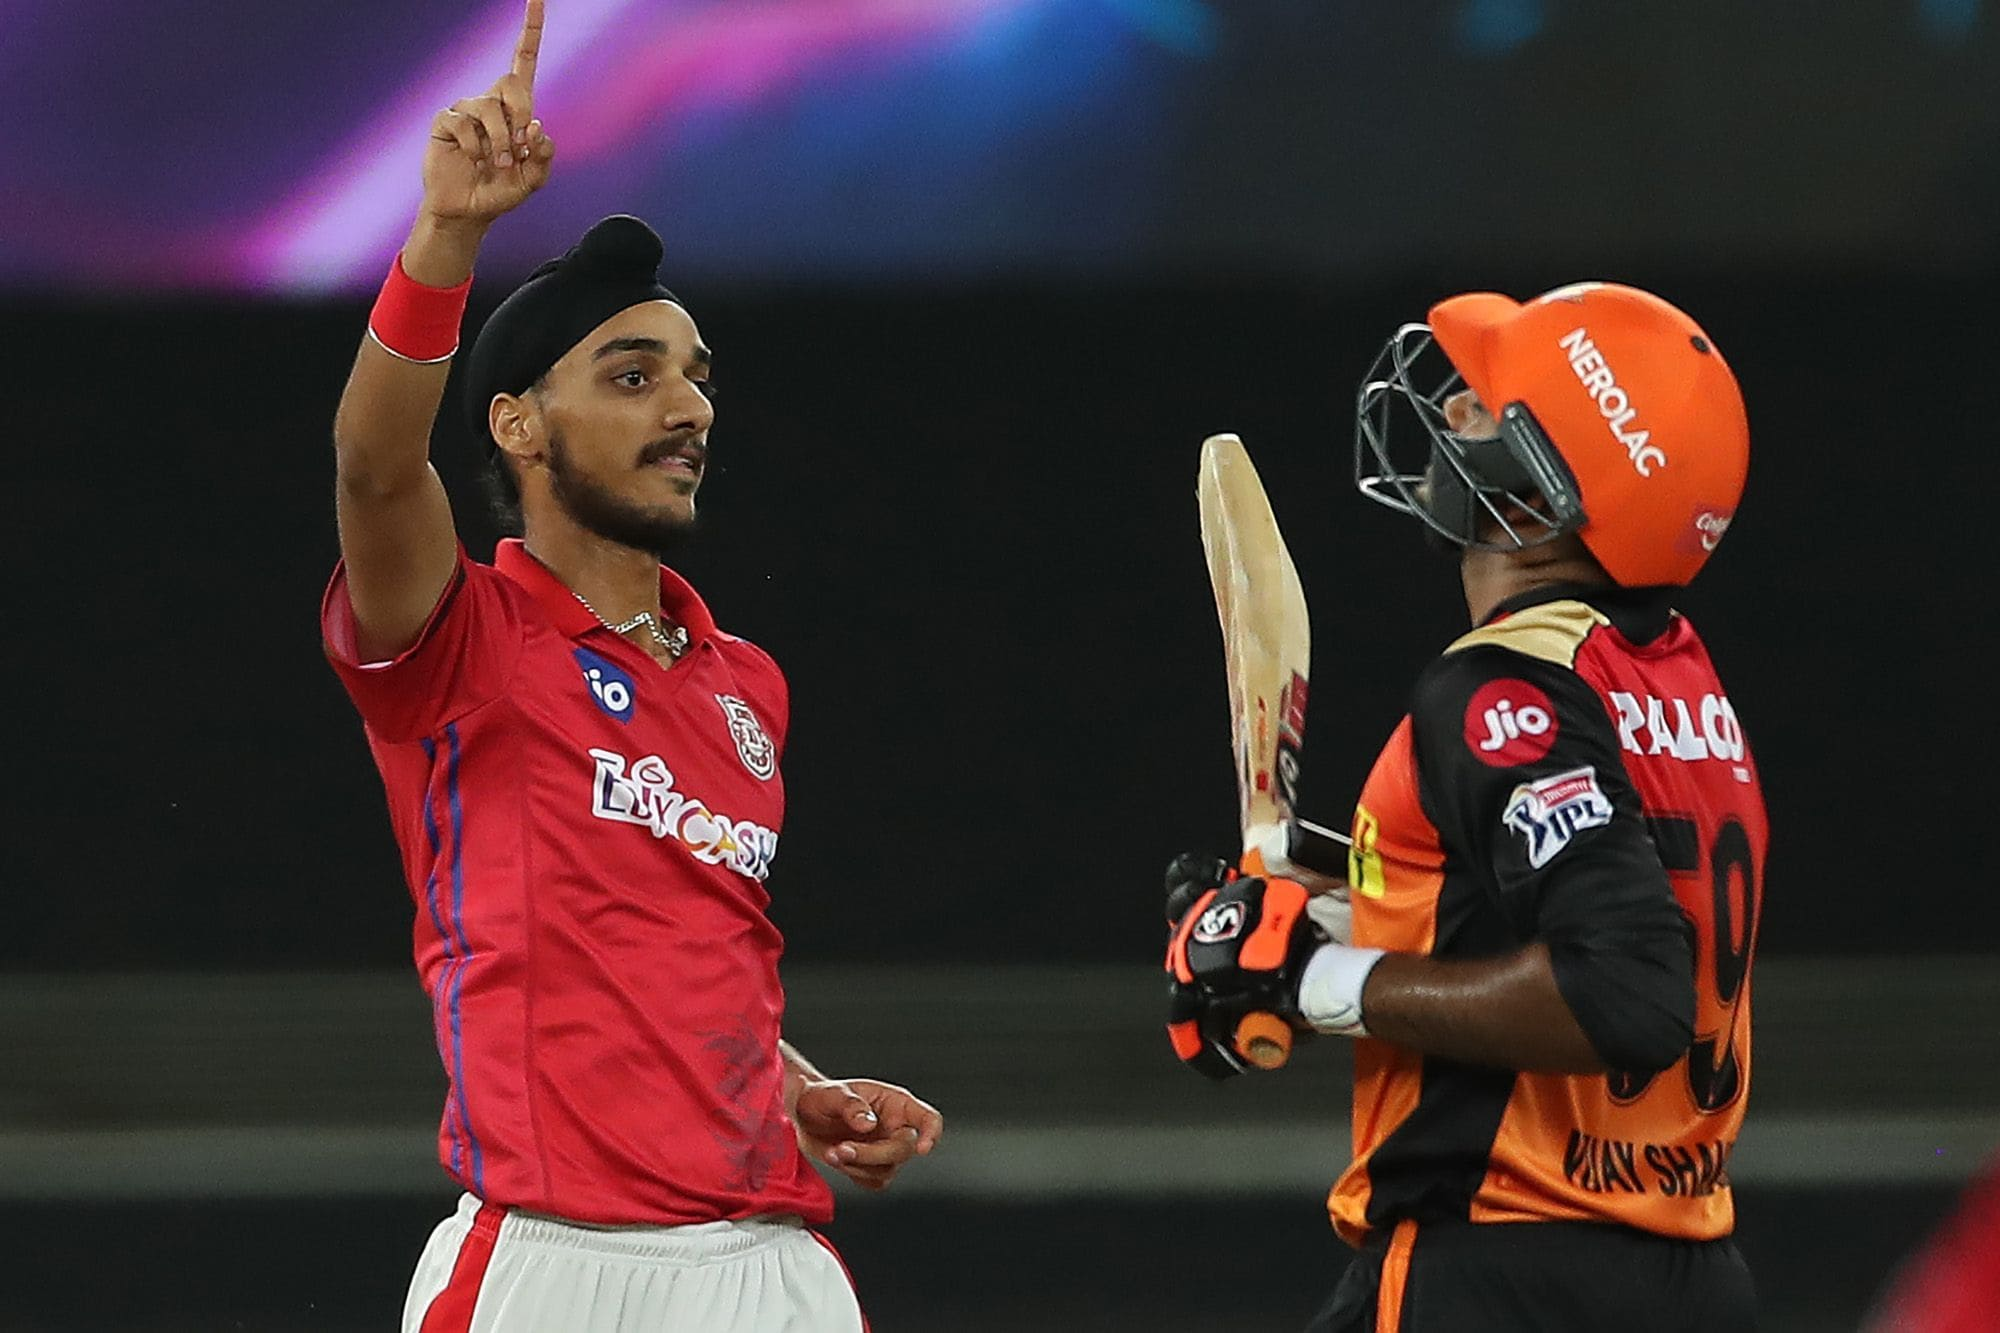 IPL 2020: In Pics, Kings XI Punjab vs Sunrisers Hyderabad, Match 43 at Dubai